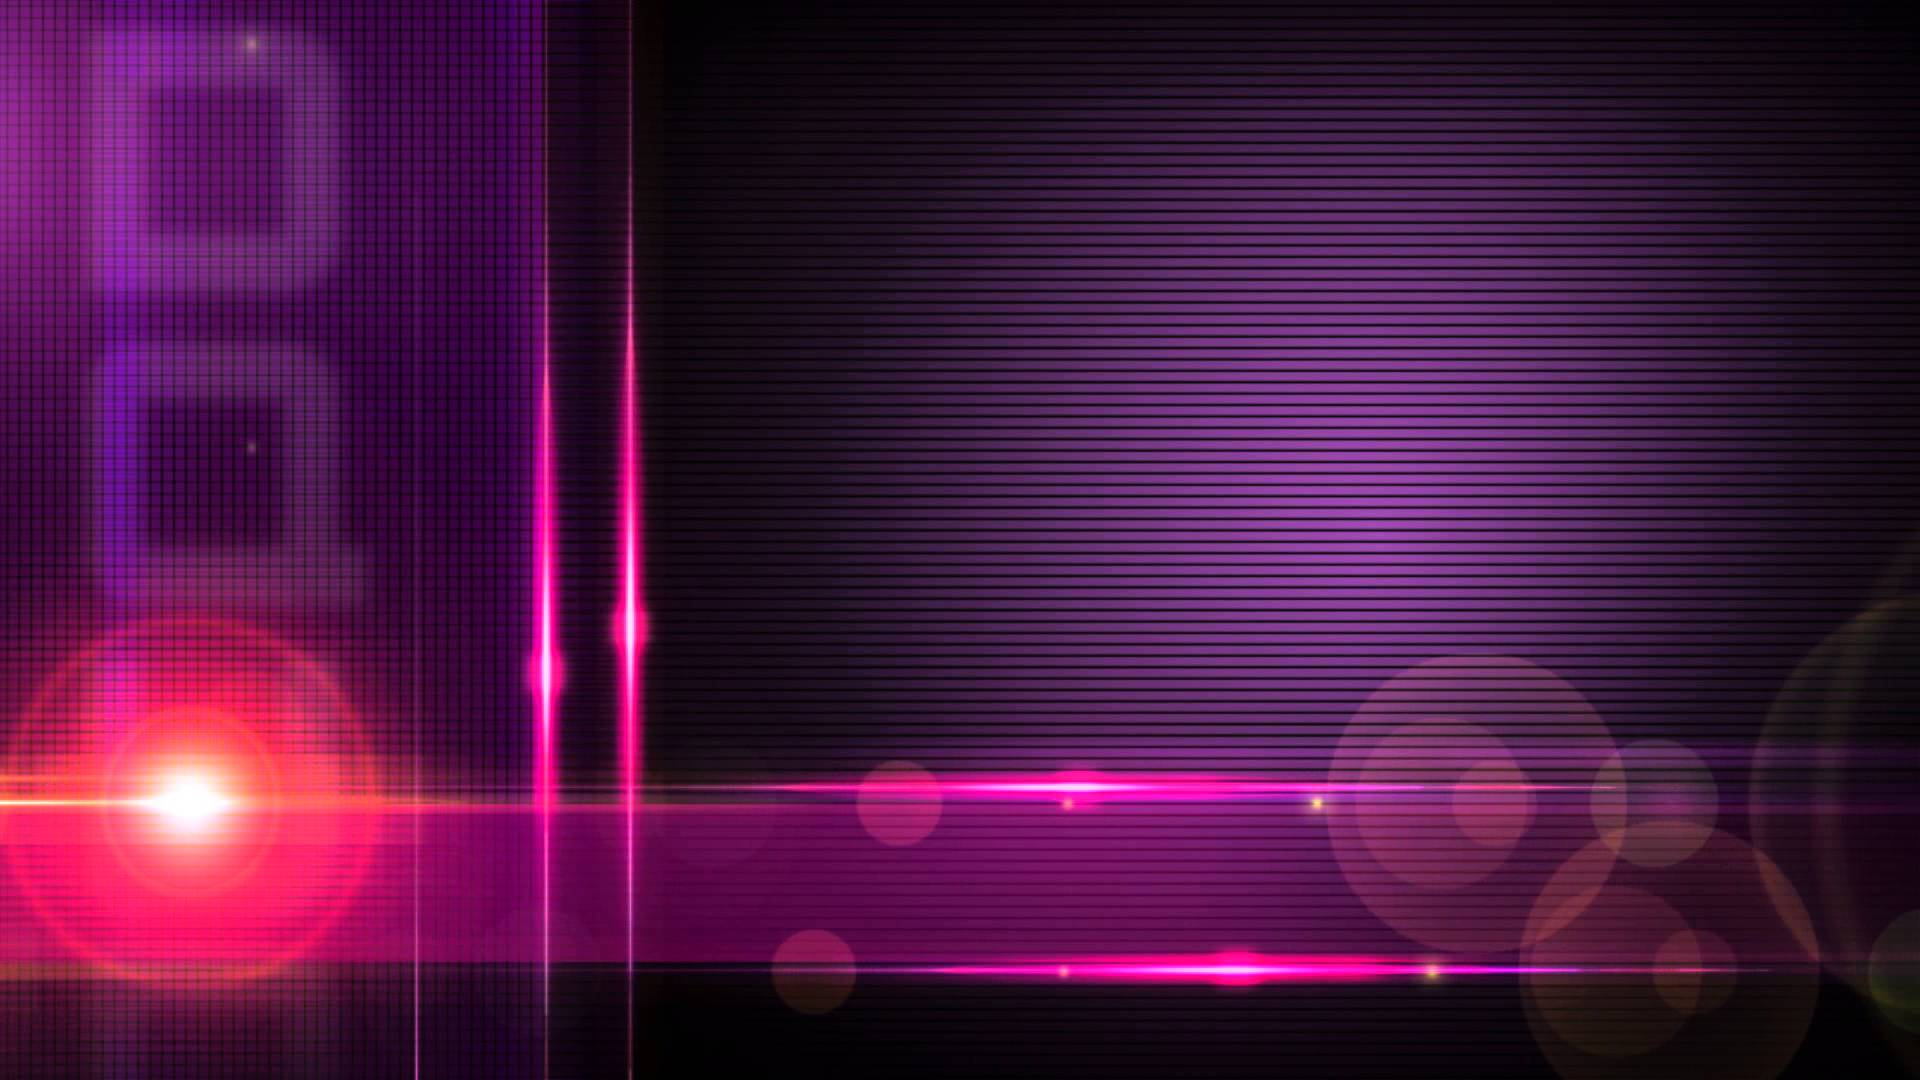 Background HD page 1 1920x1080